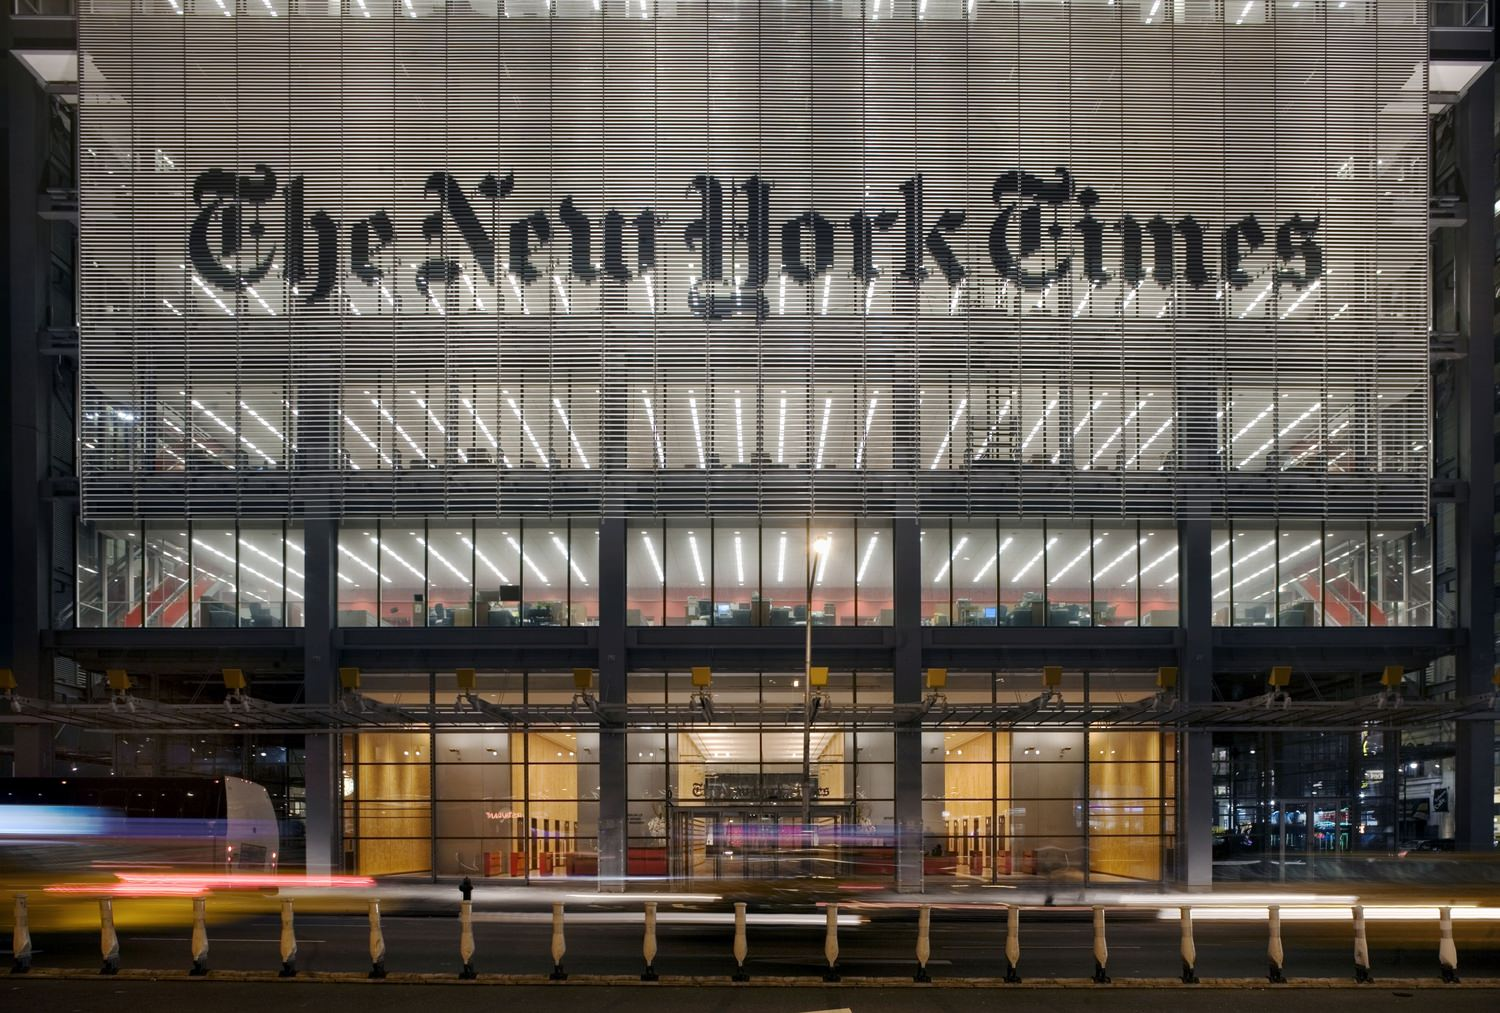 Exterior street view of the building entrance with large sign that says The New York Times.